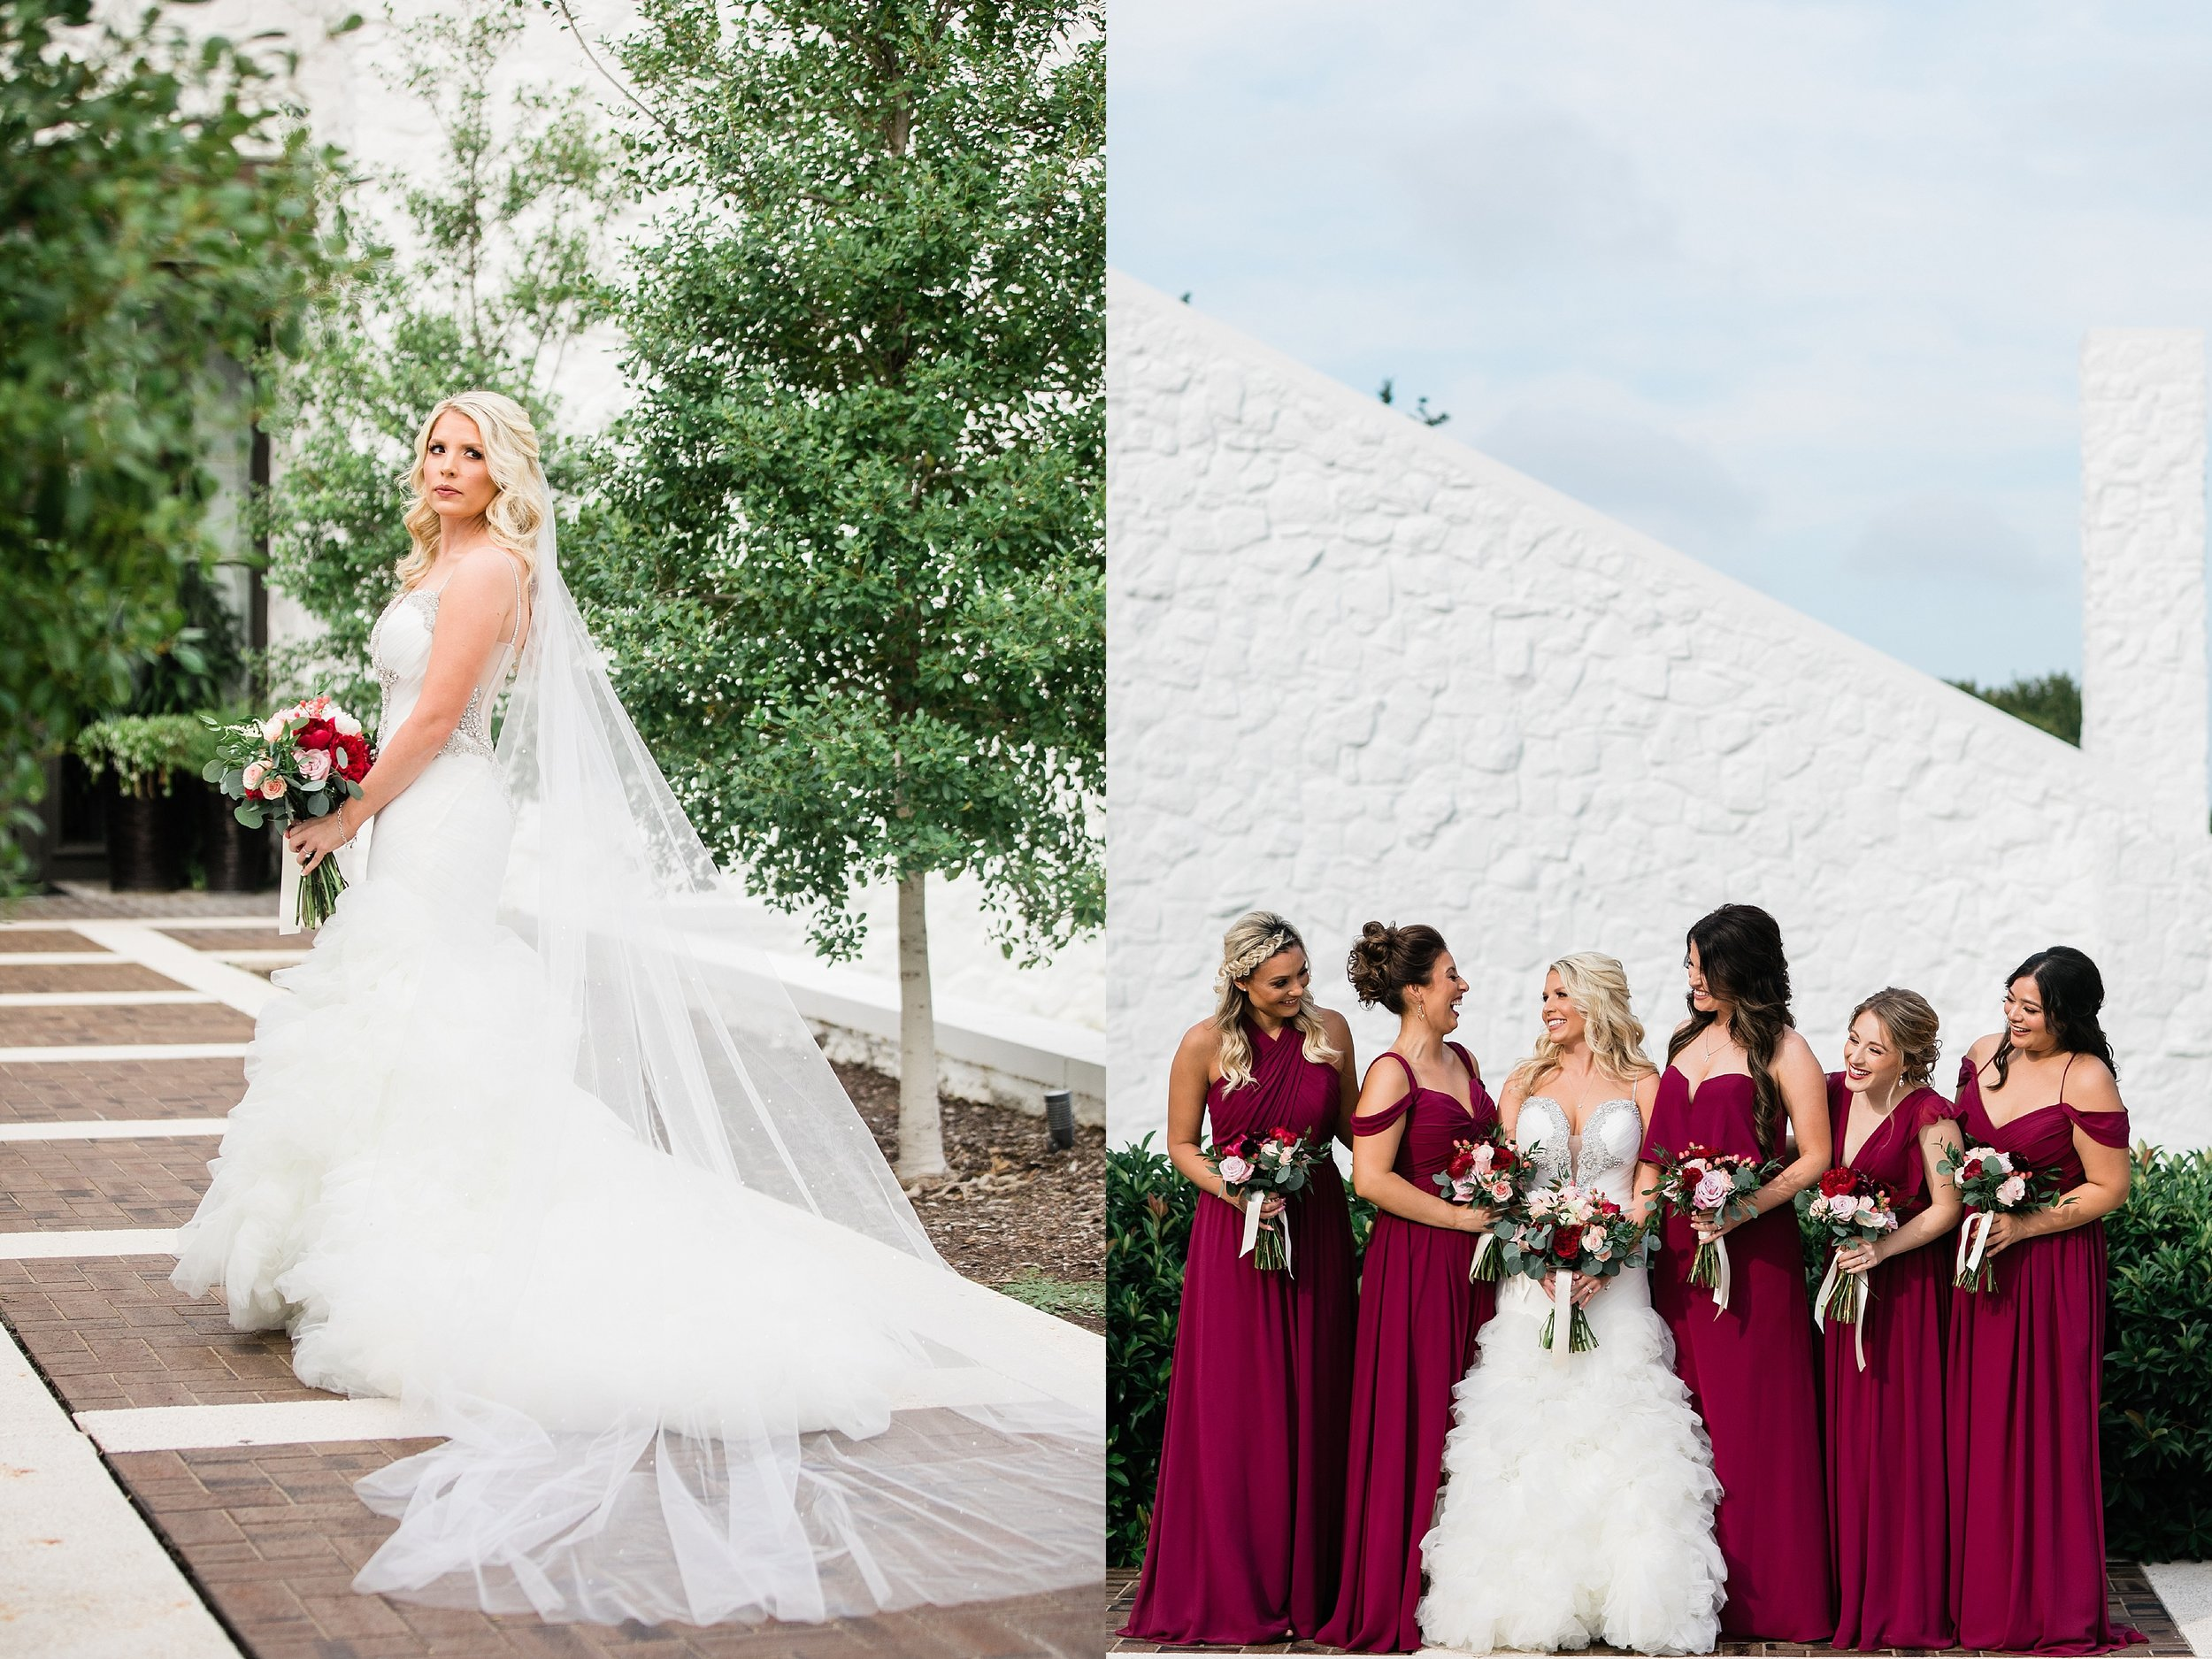 stonegate-mansion-marty-leonard-wedding-photography-fort-worth-texas-lauren-pinson-dfw-mayfield-events-022.jpg